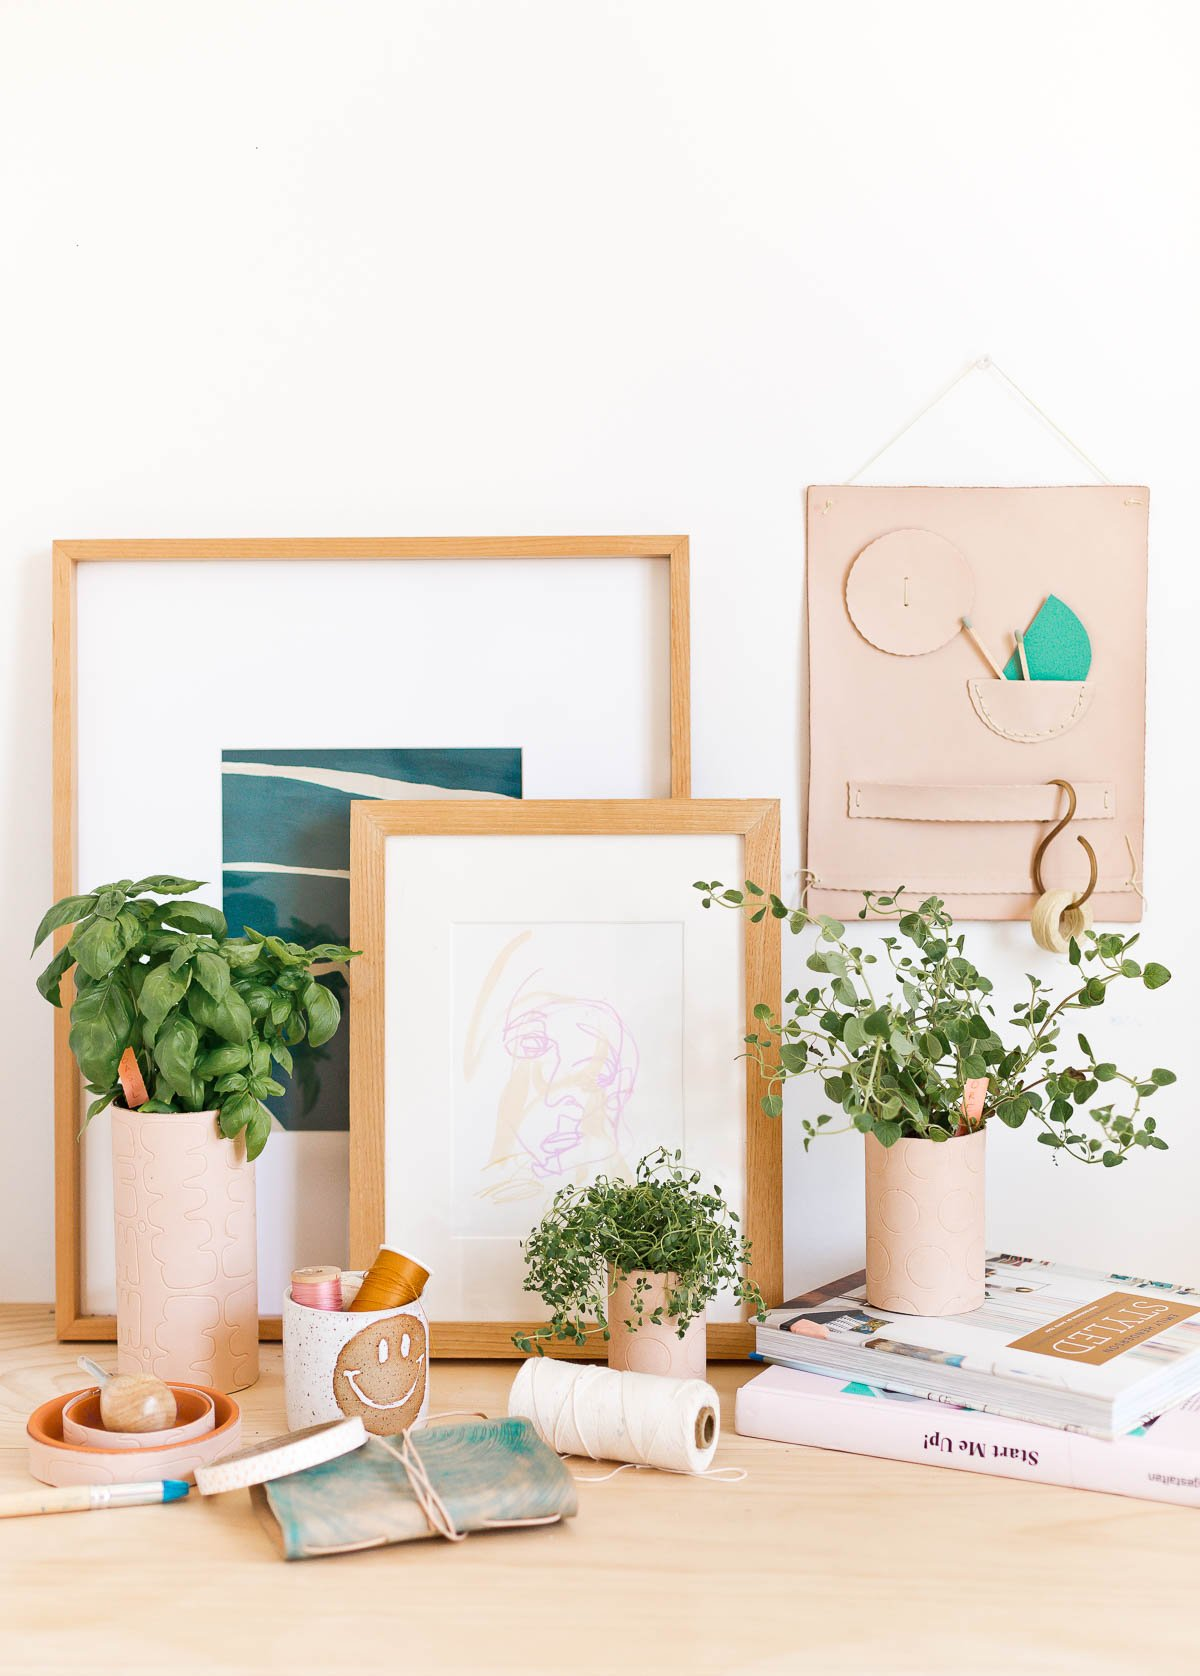 3 DIY ways to use leather to make unique items you'll actually use. Make a DIY leather wall organizer, DIY leather planters, and a DIY leather notebook. Click through for all three tutorials. #leather #diy #leatherdiy #homedecor #workspace #desk #indoorherbgarden #polkadot #herbs